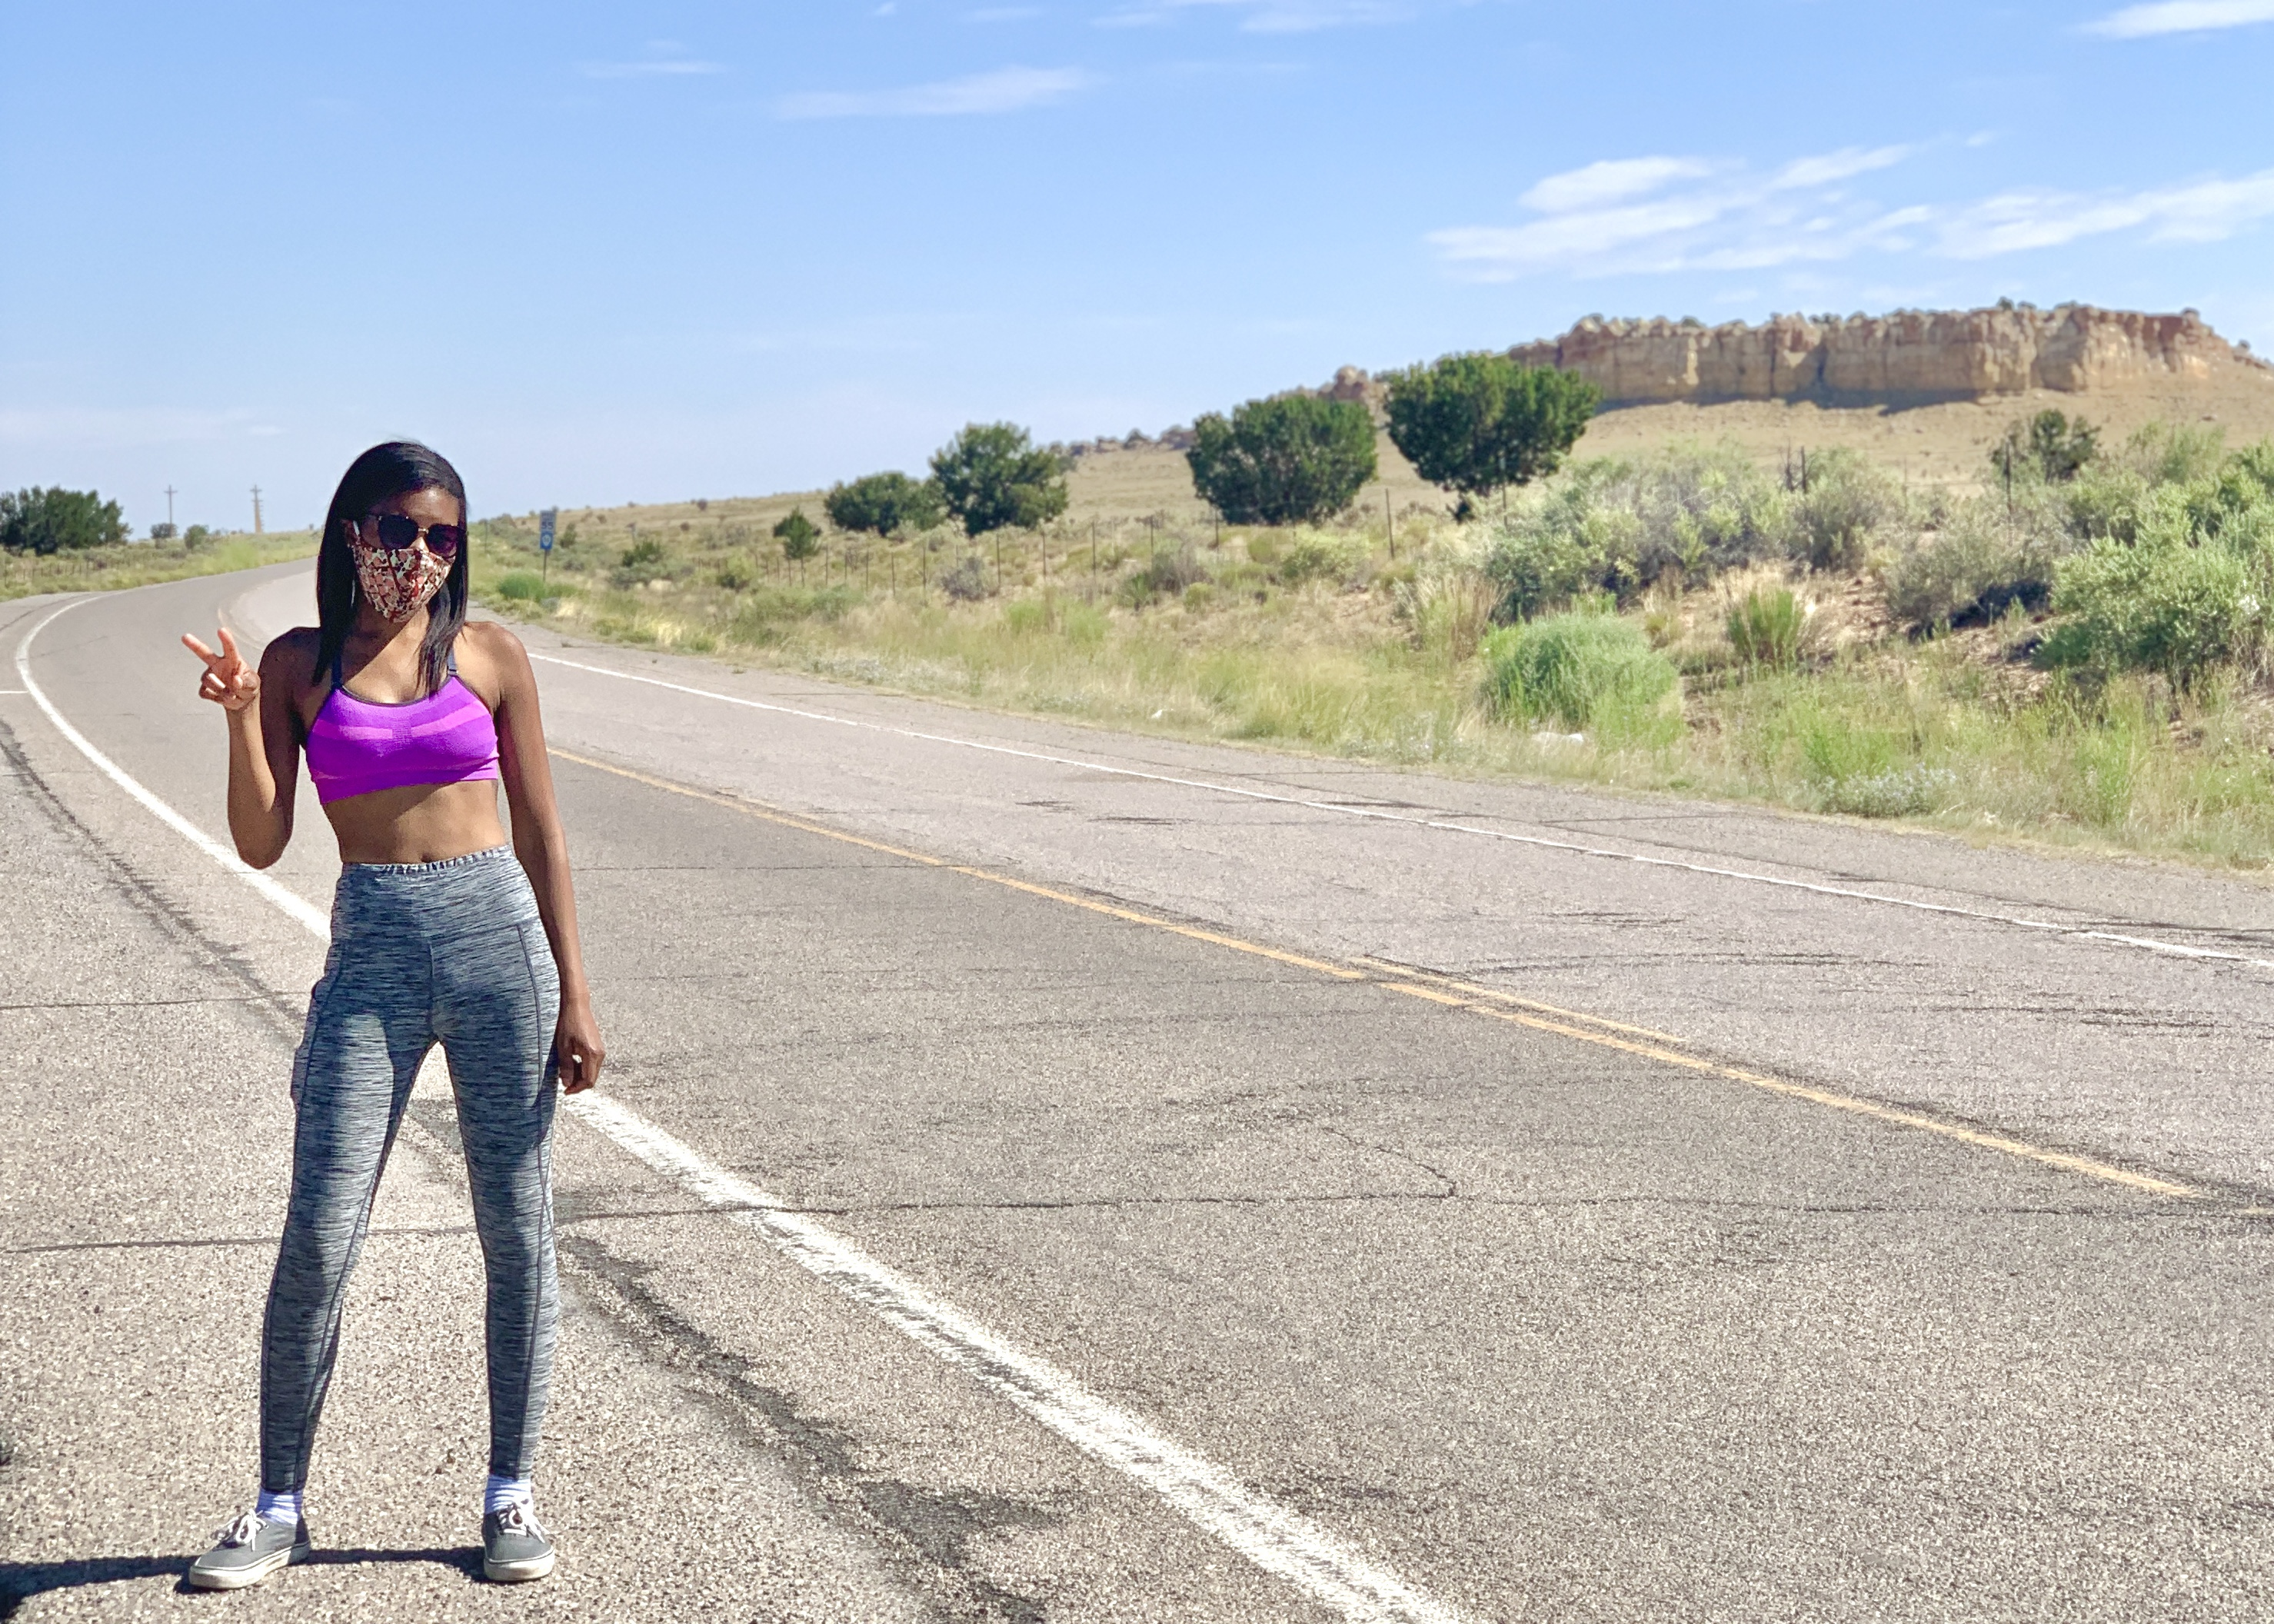 Jasmine wears a mask sunglasses and workout gear. She stands in the middle of an empty road flashing a peace sign.